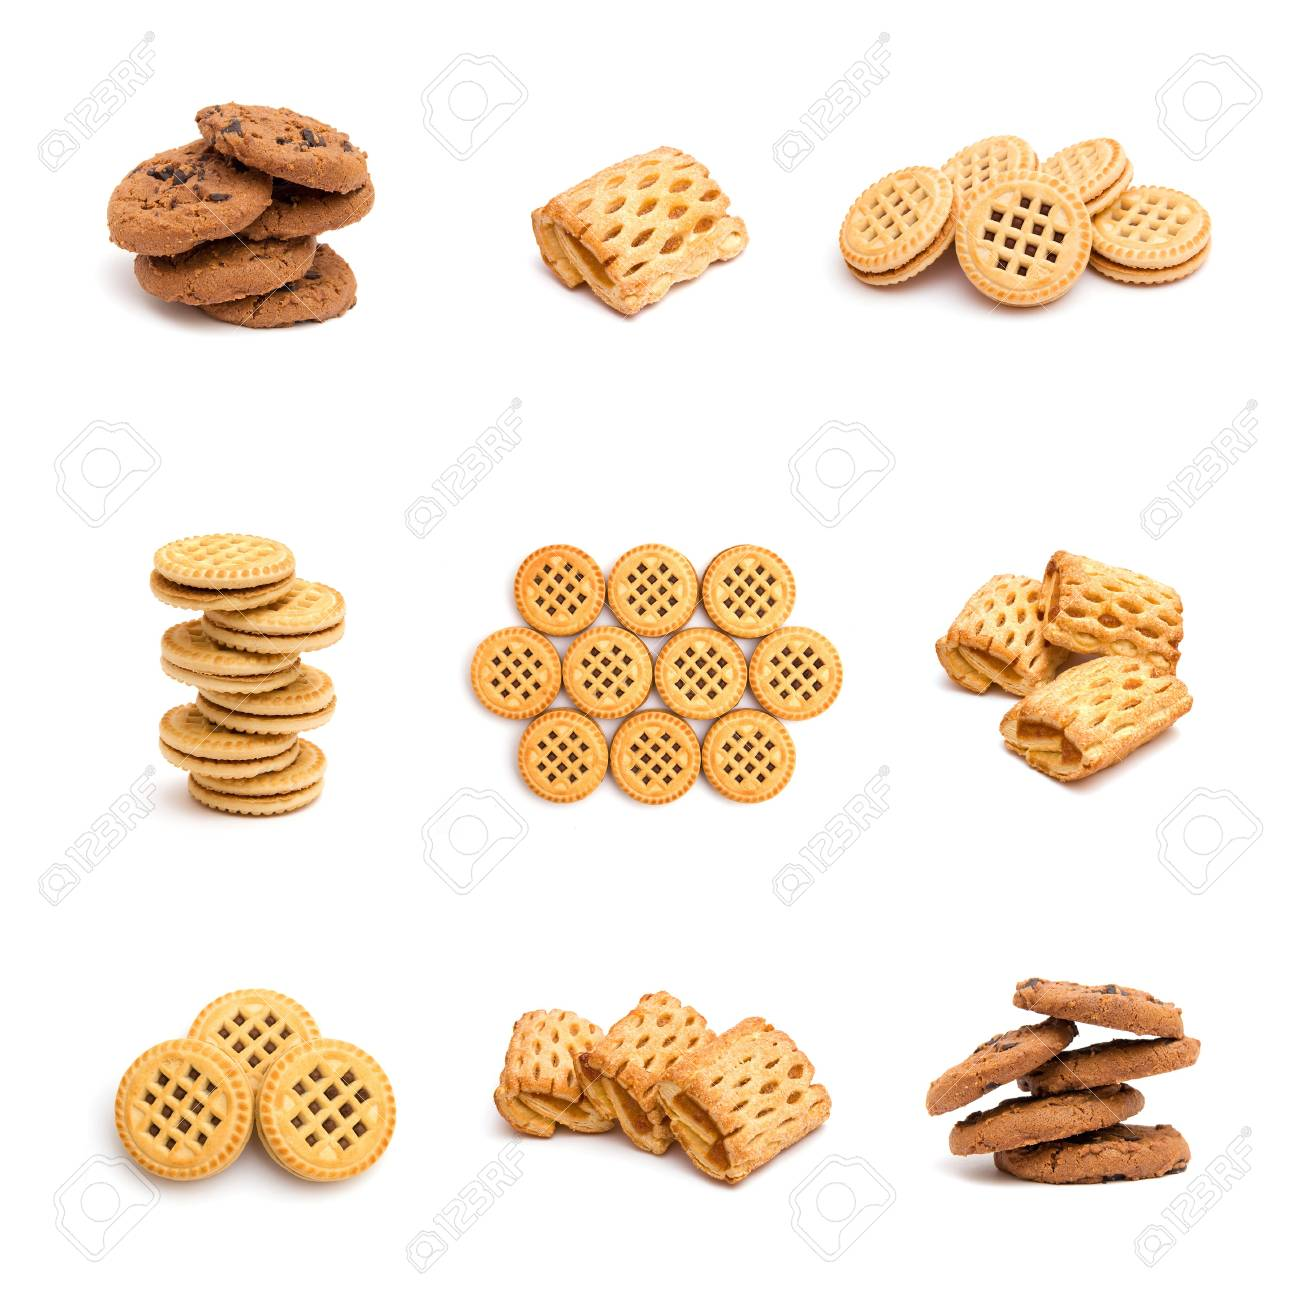 Collage of cookies isolated on white background Stock Photo - 6925804